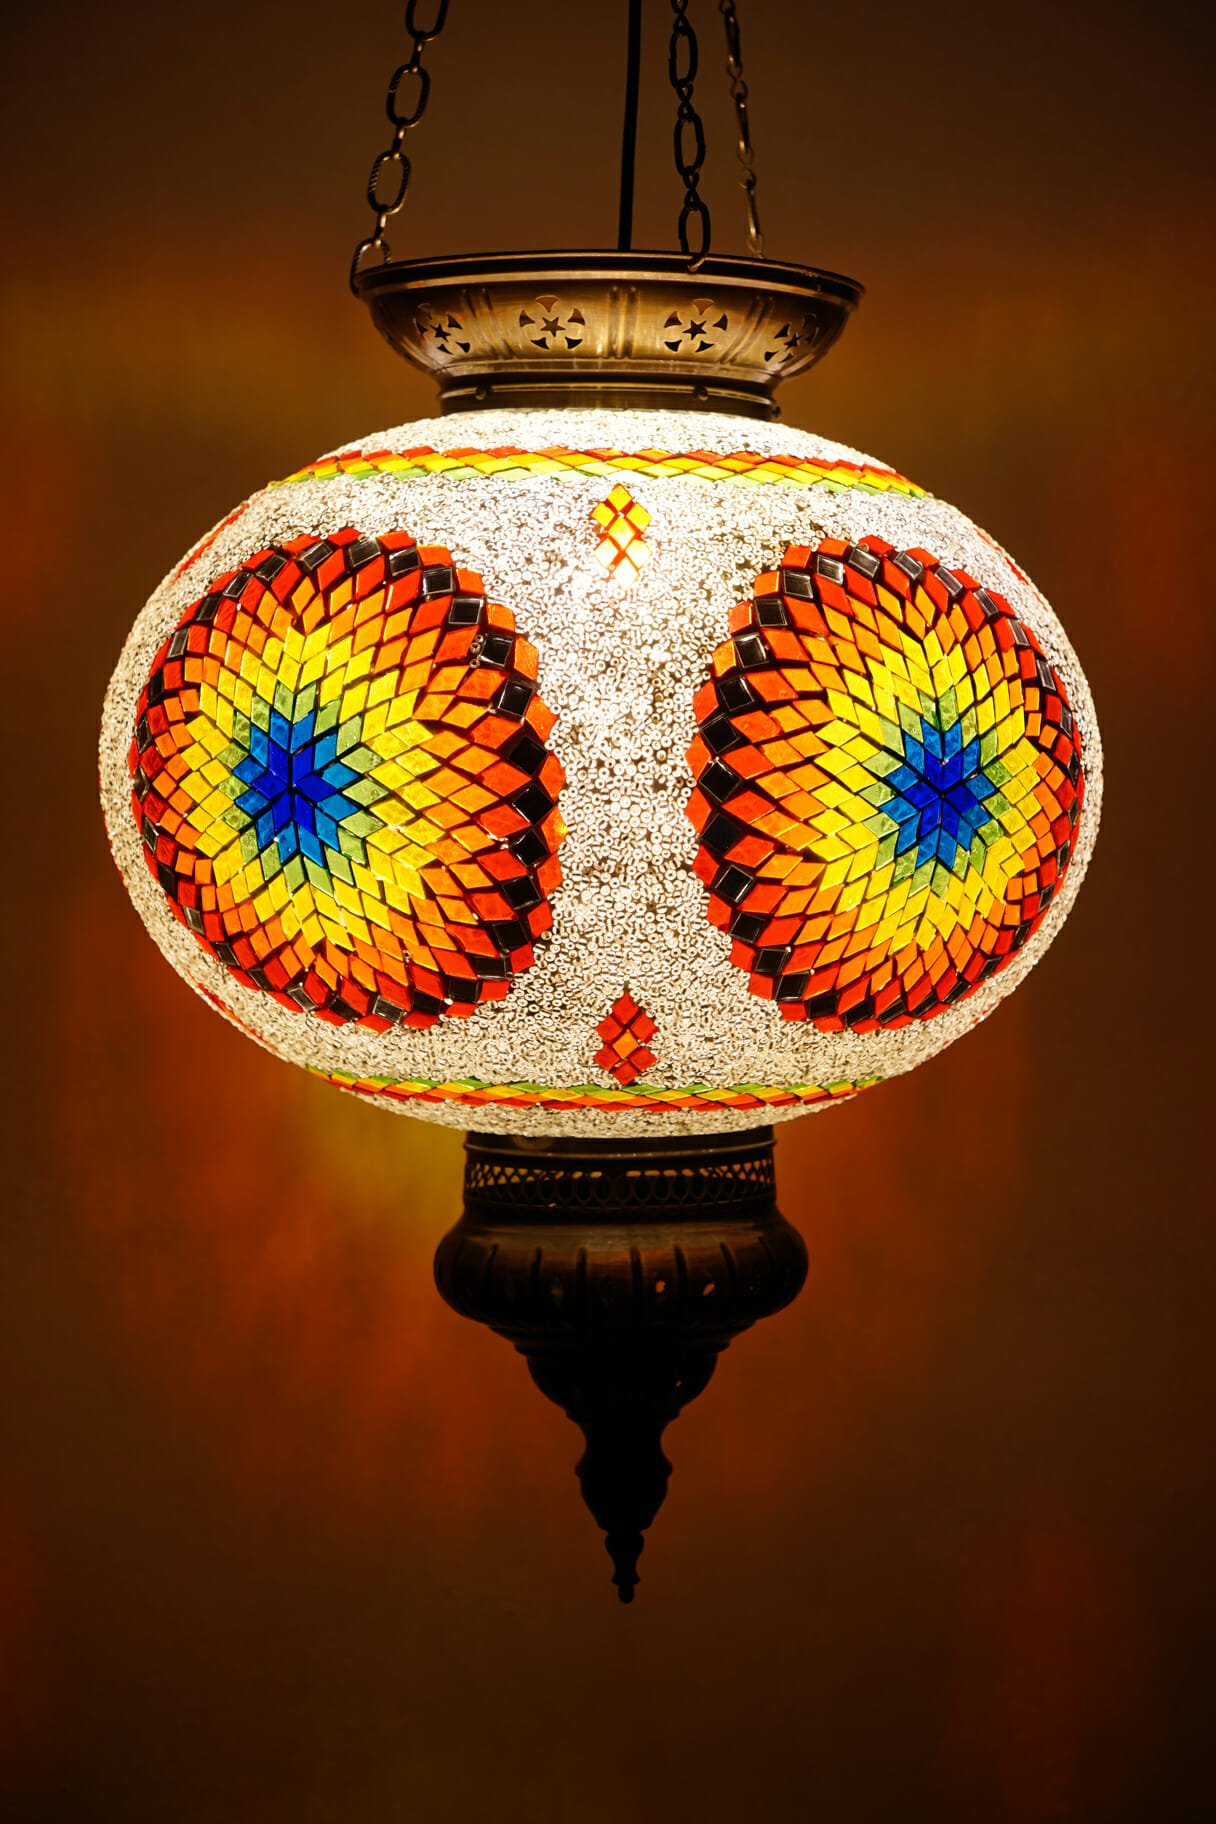 Chakra Ceiling Light The Dancing Pixie